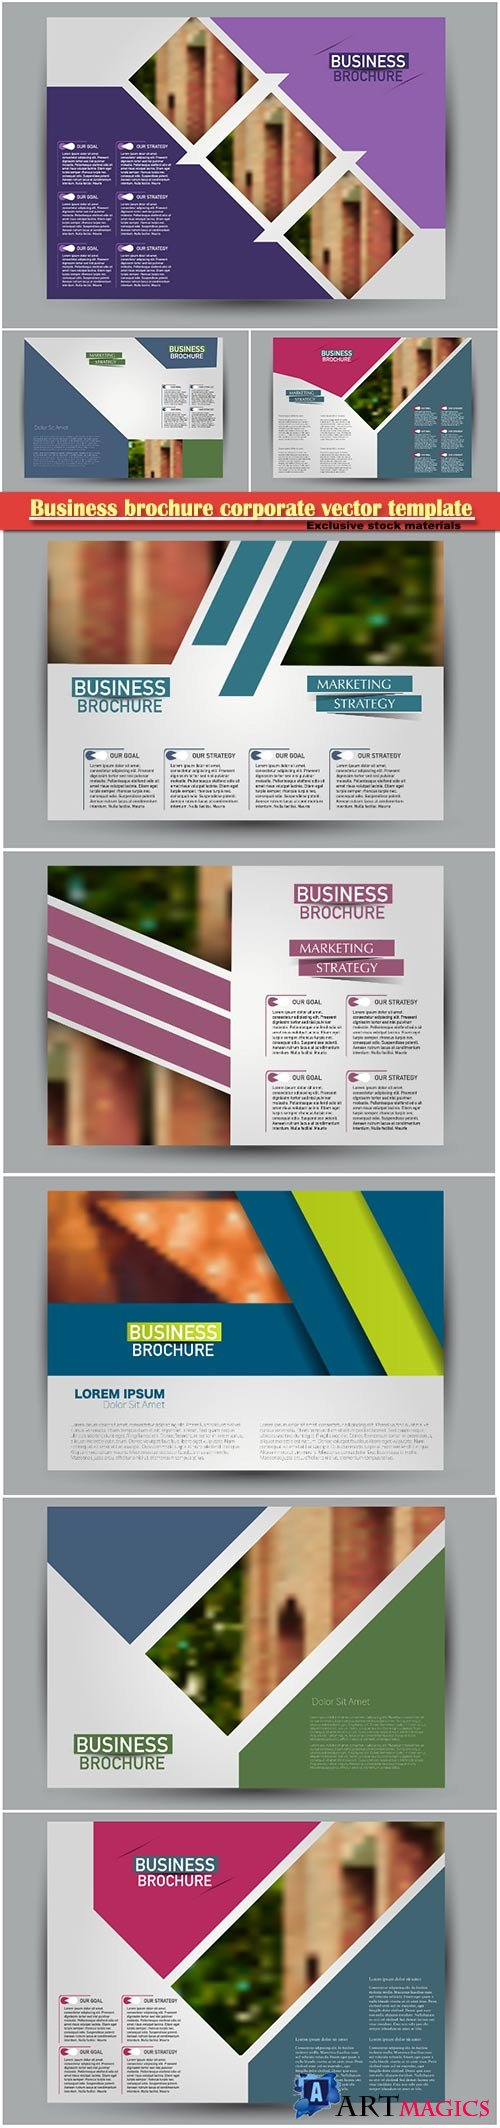 Business brochure corporate vector template, magazine flyer mockup # 3